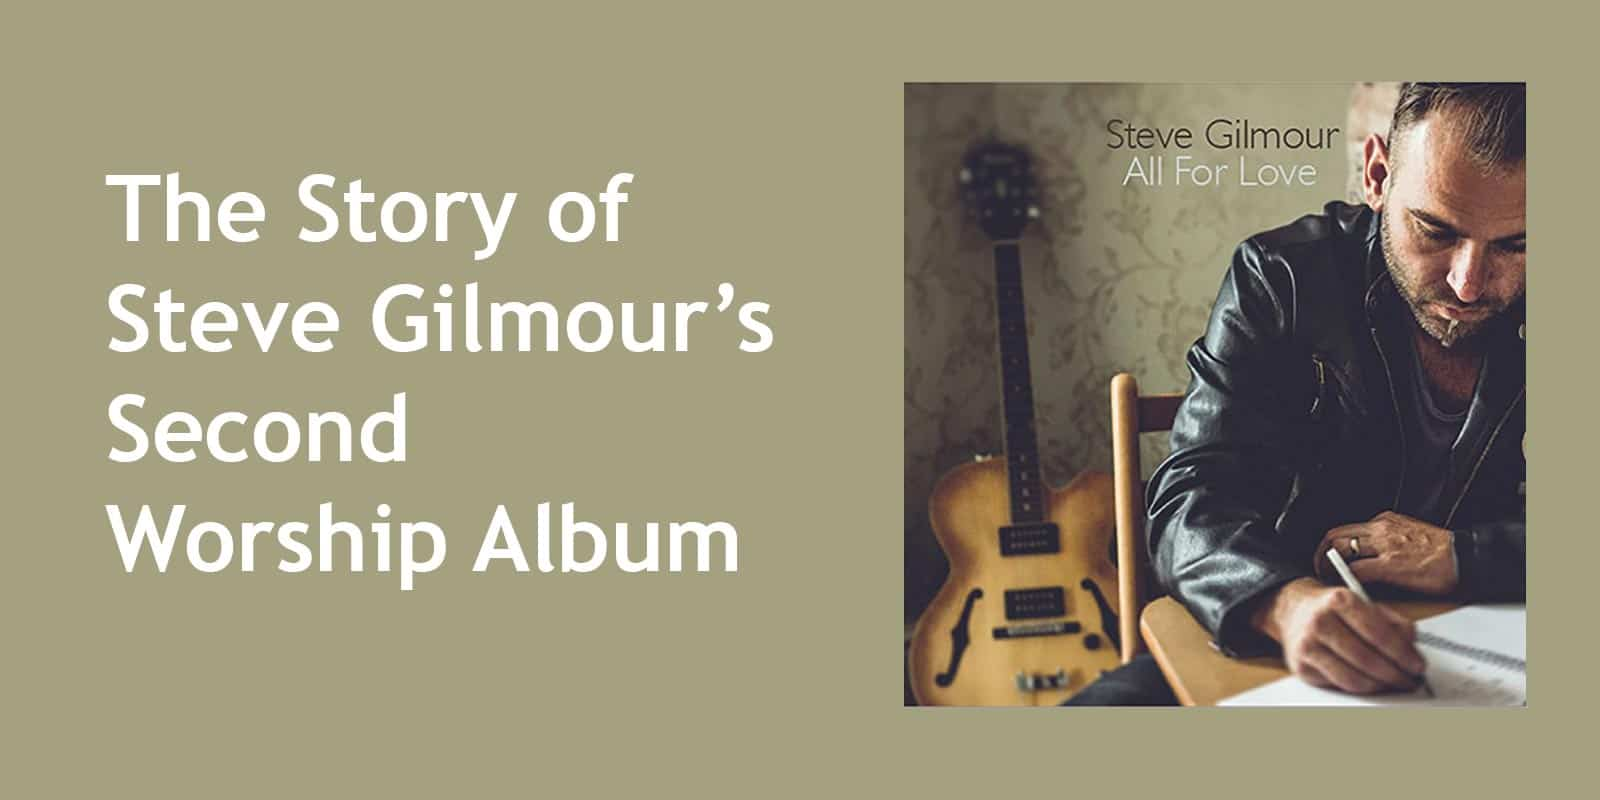 The story of Steve Gilmour's second worship album